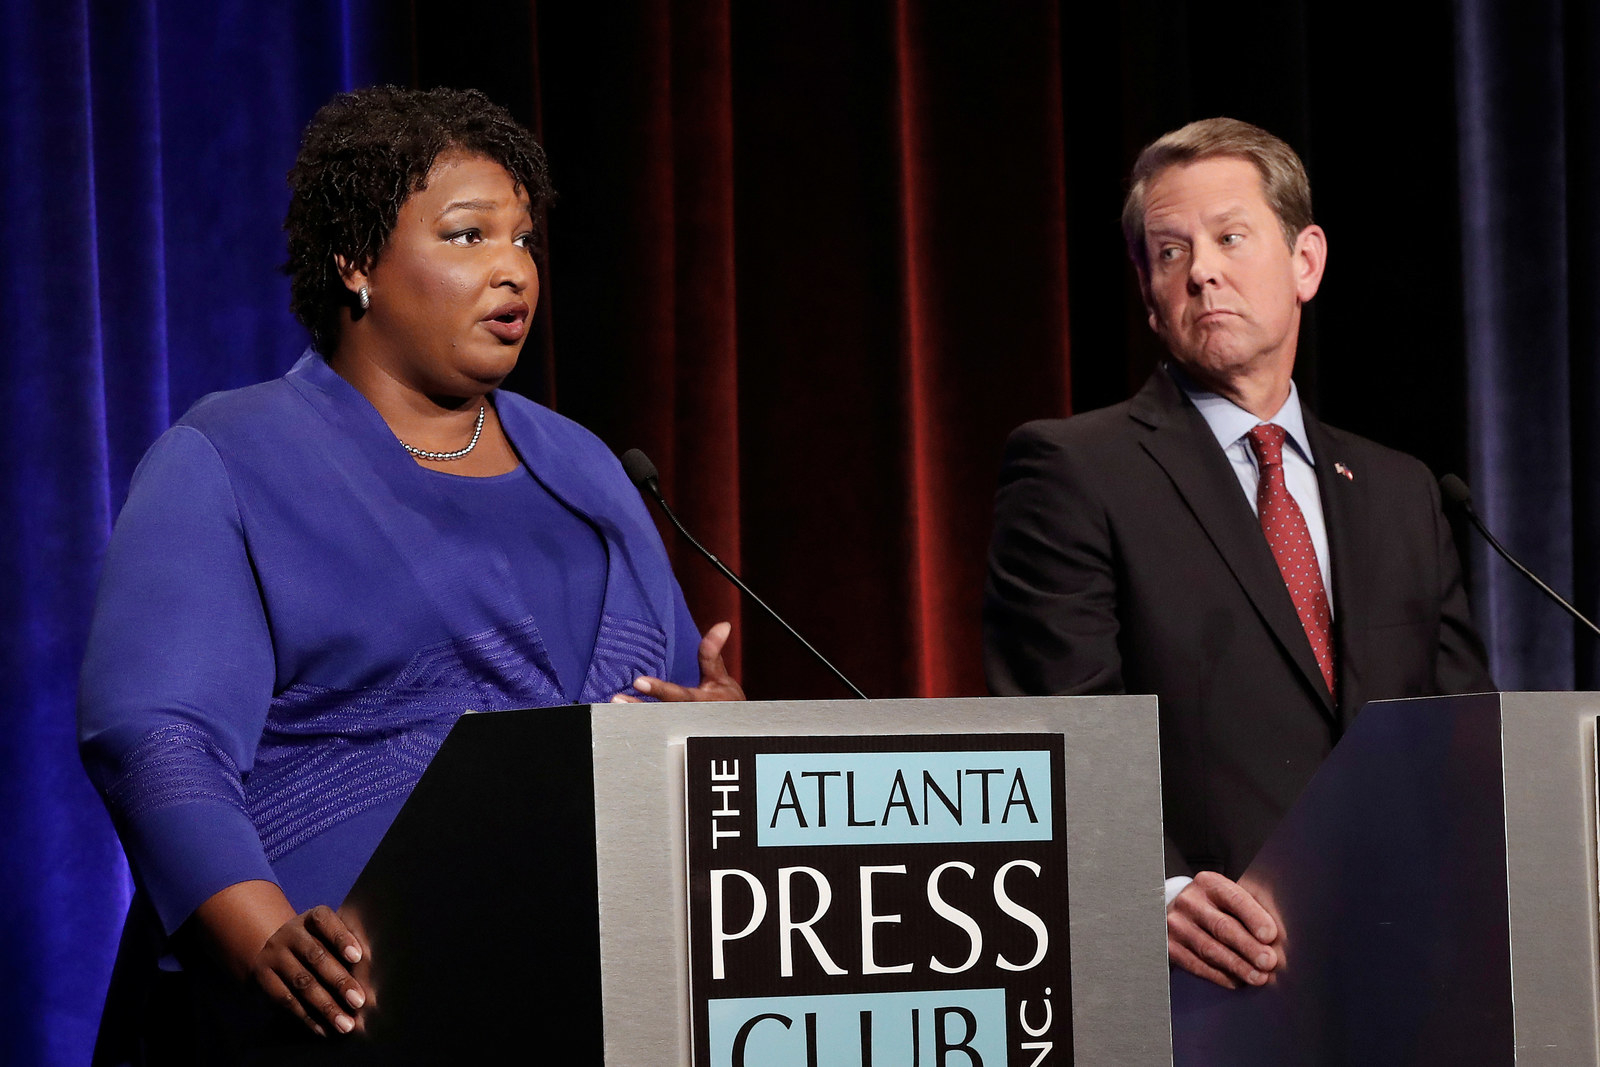 Georgia gubernatorial candidates Stacey Abrams and Brian Kemp during a debate in Atlanta.